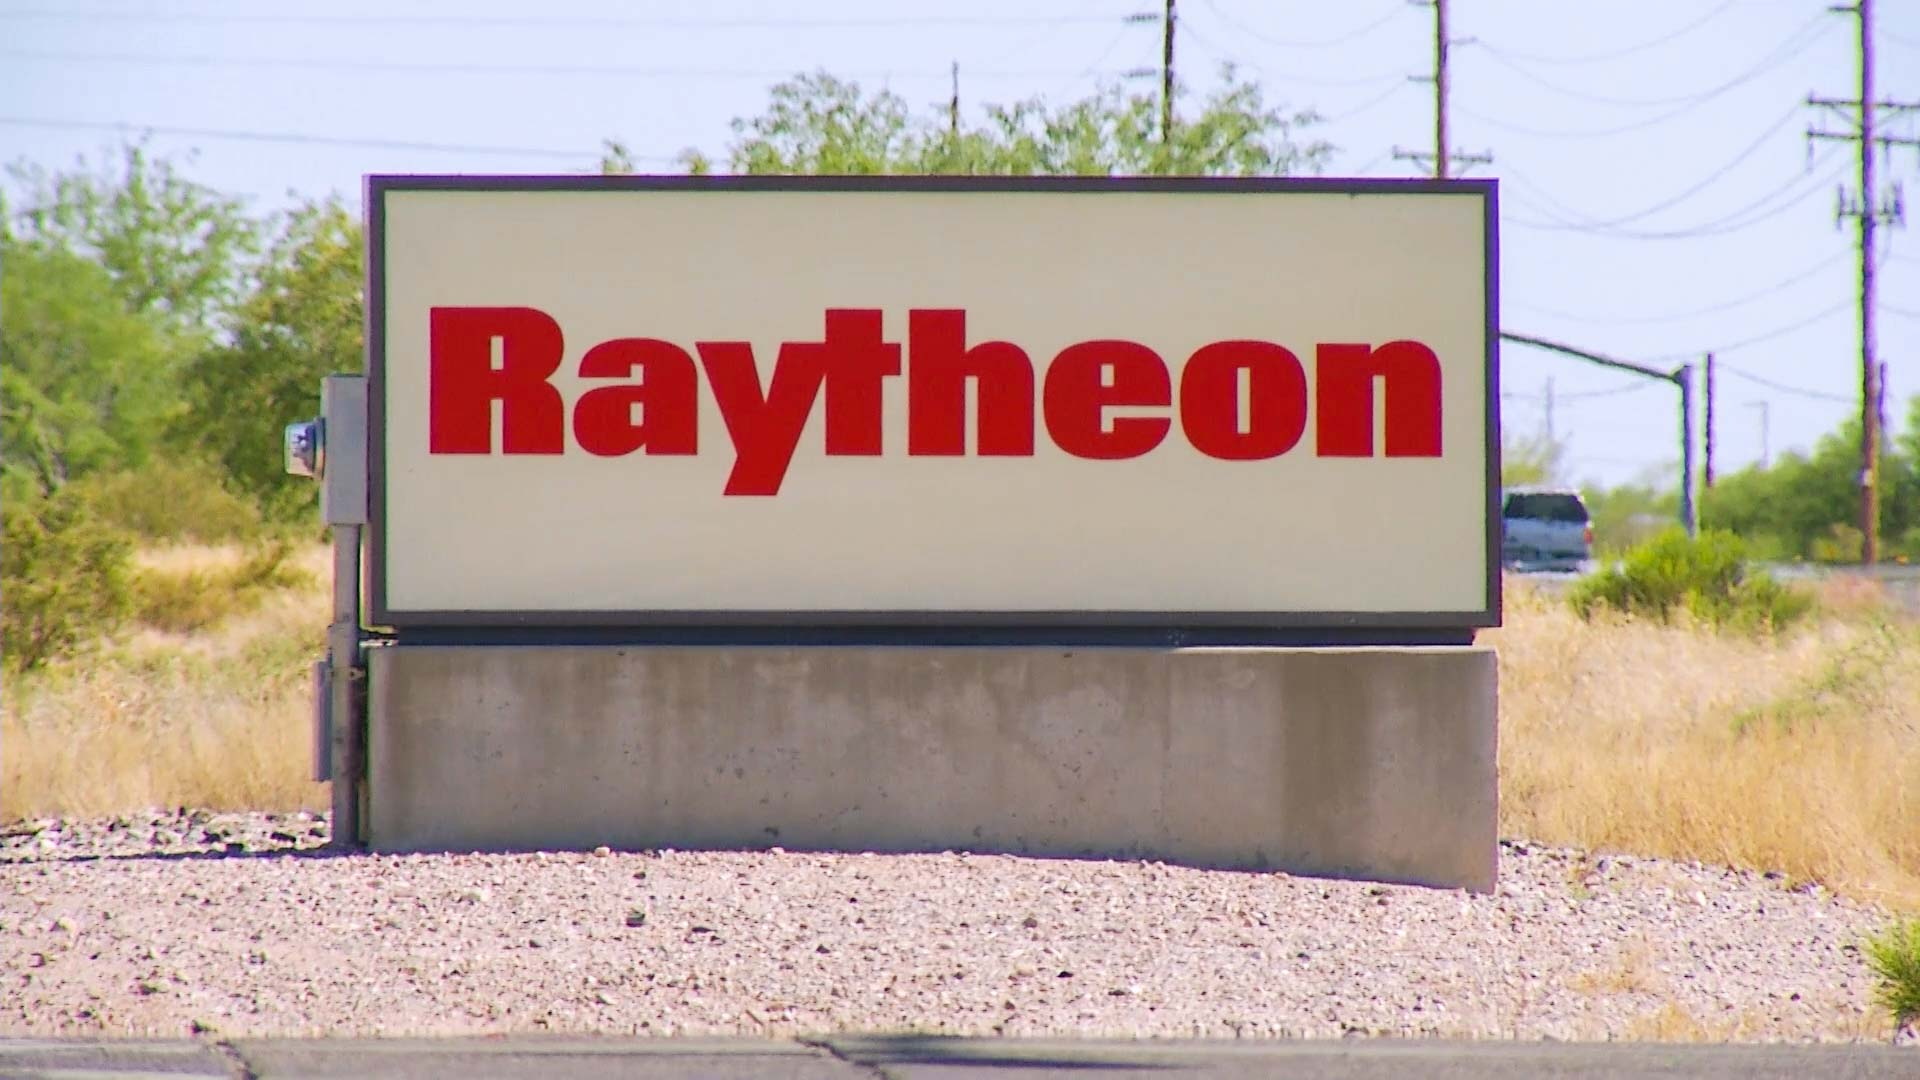 raytheon sign hero